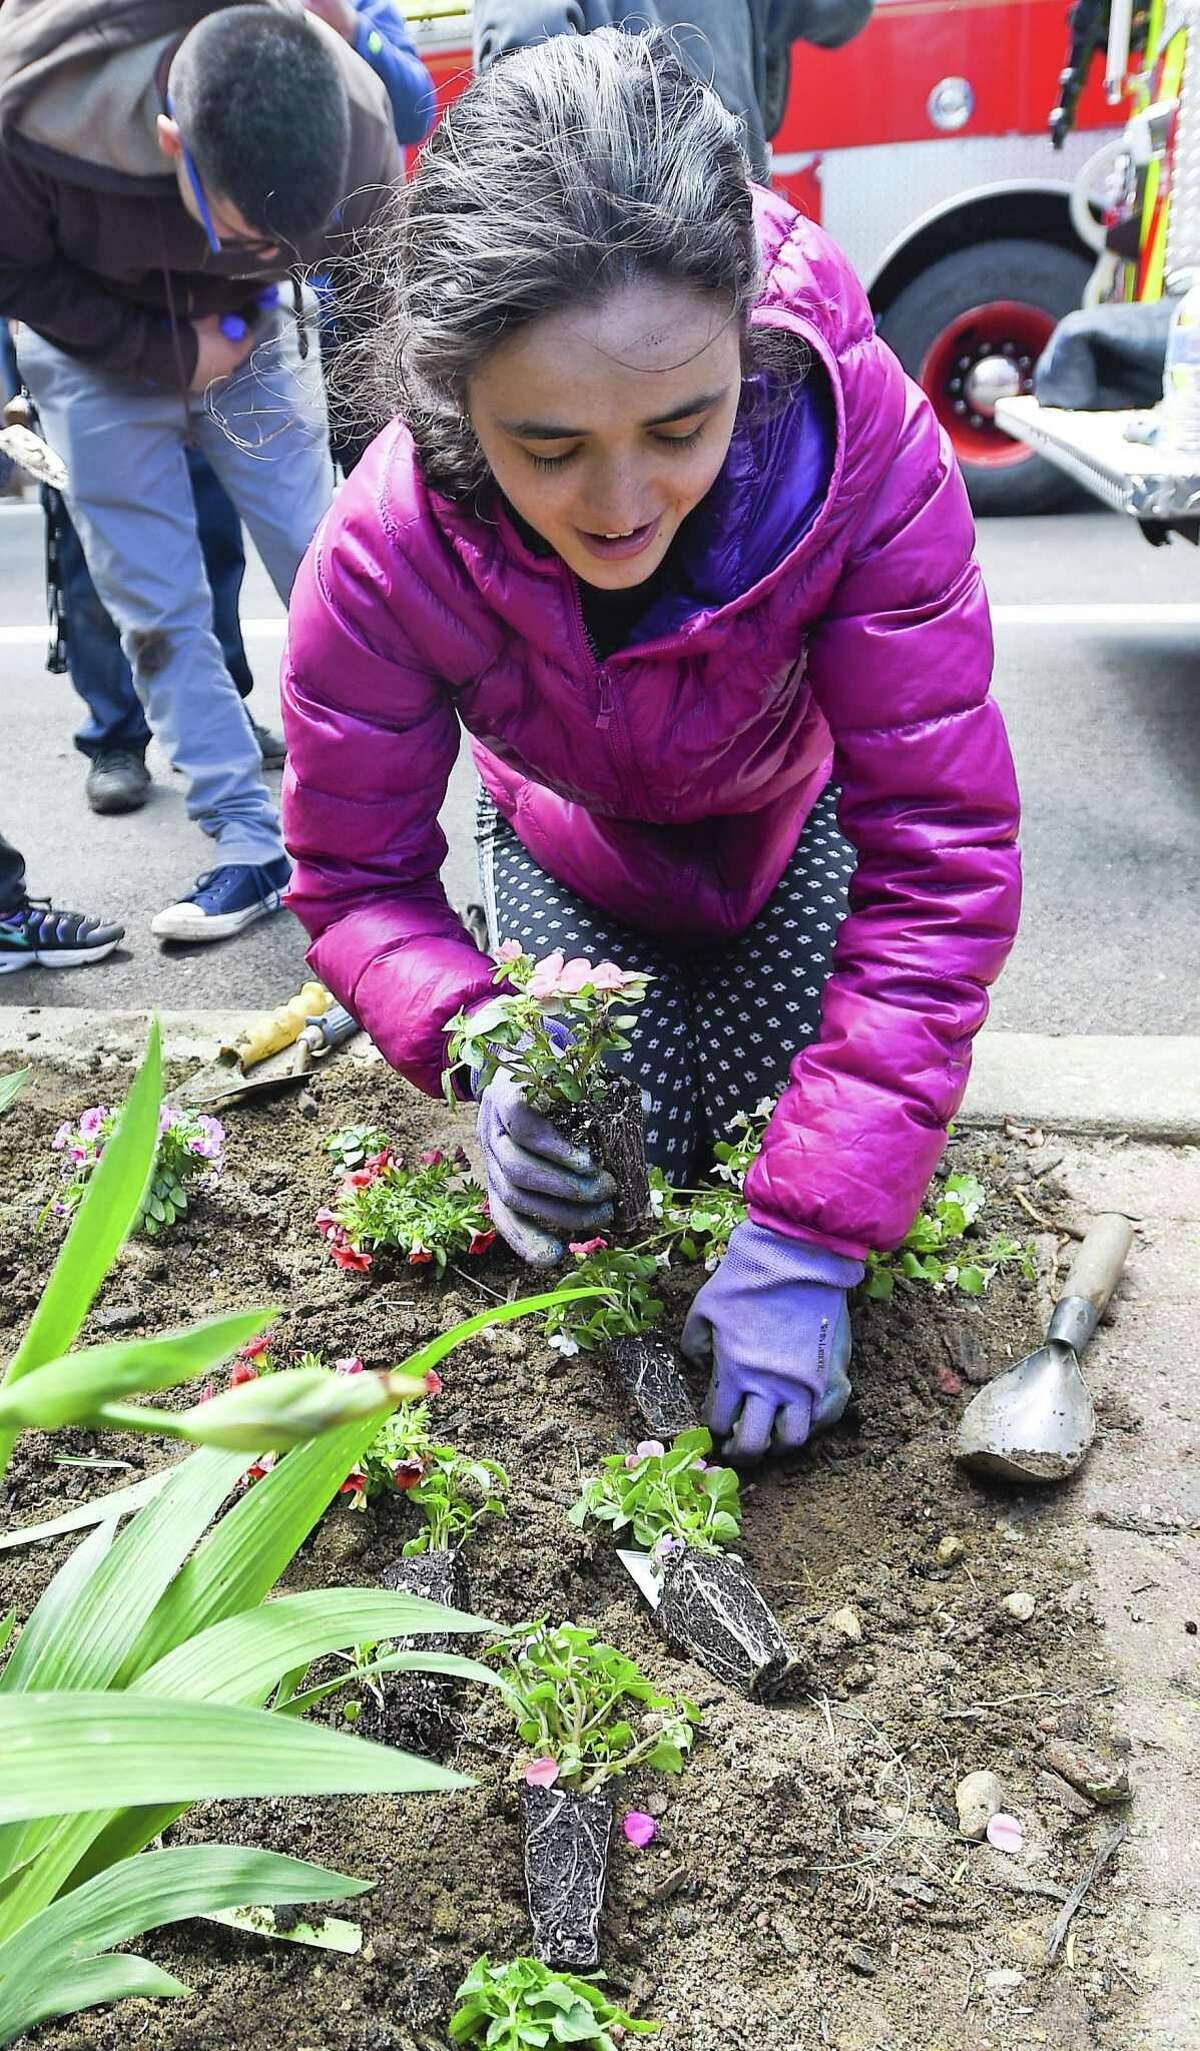 Jennie Bracken, a student from Stamford Public Schools Individuals Achieving Independence (IAI) program plants spring flowers at Stamford Fire Station #3 on May 15, 2019 in Stamford, Connecticut. Six students from the IAI program, along with a dozen firefighters spent the day planting flowers and shrubs to beautify the firehouse grounds. This is the fourth year that Stamford Public Schools Social Worker Laura Marino and Engine 3 Stamford Firefighter Tony Marino have paired individuals with firefighters to help students learn life and vocational skills.